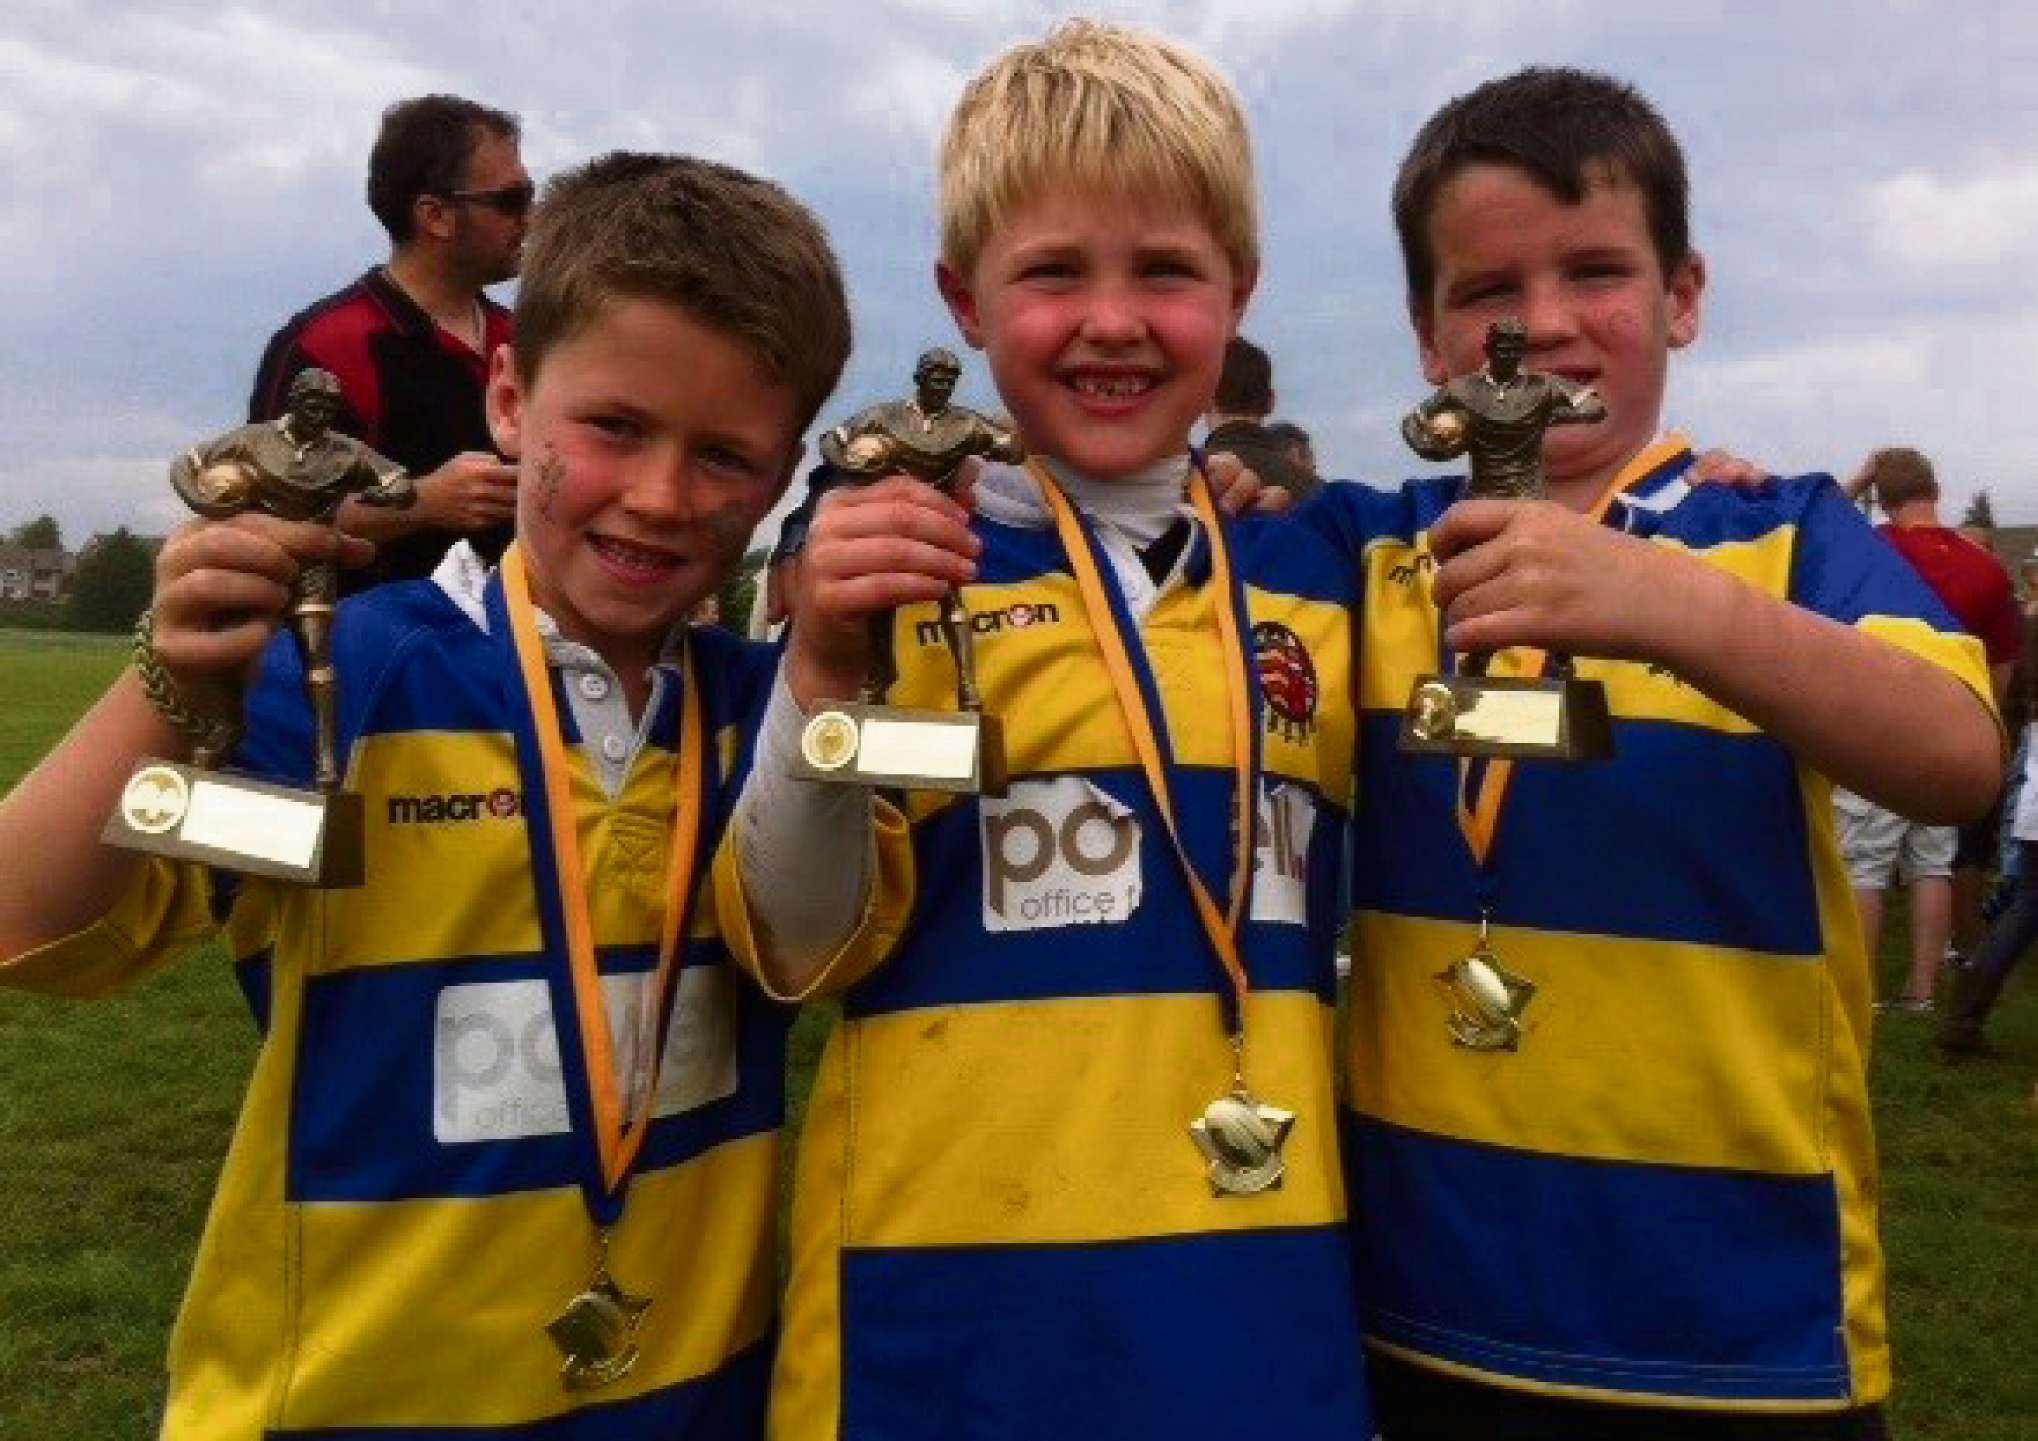 MEDALS AND TROPHIES: Haydn Craven, Joshua King and Oliver Long. U7s Trophy winners 2014